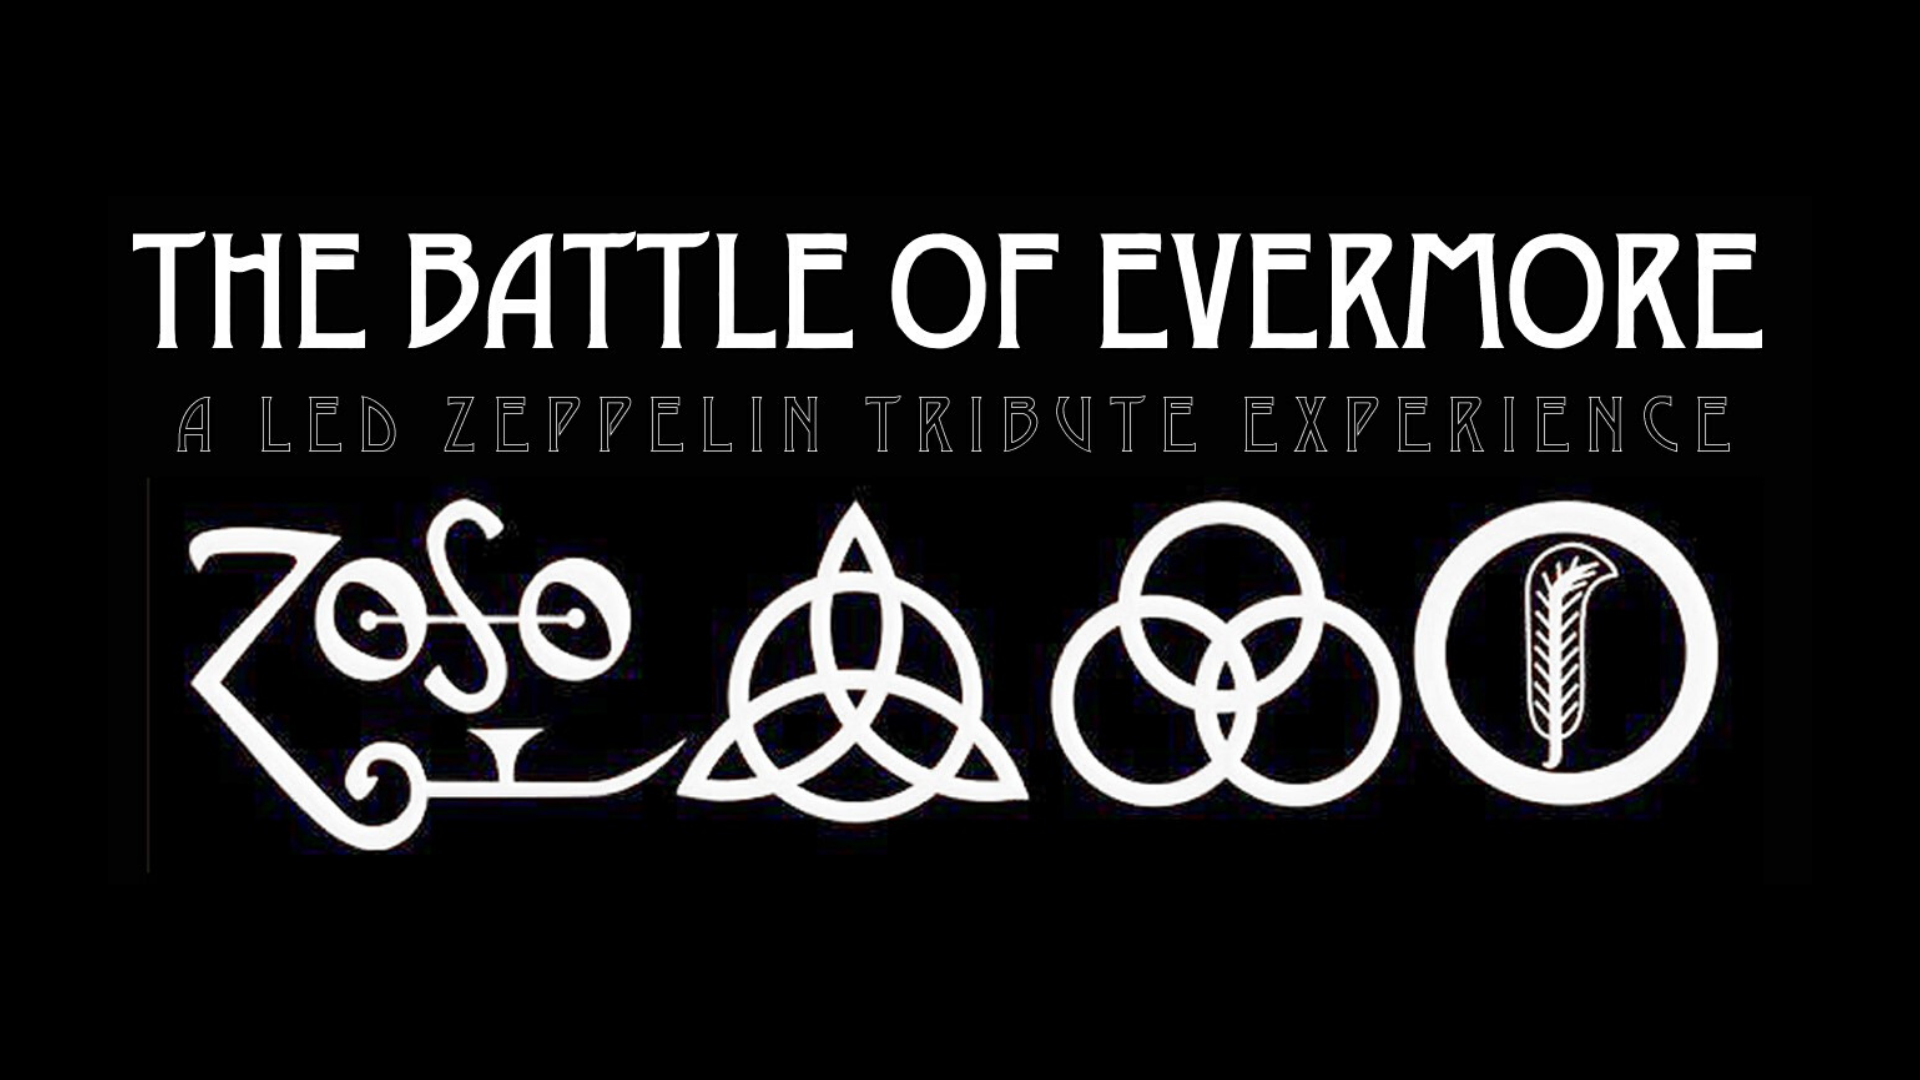 Promo image of Battle of Evermore (Led Zeppelin Tribute)